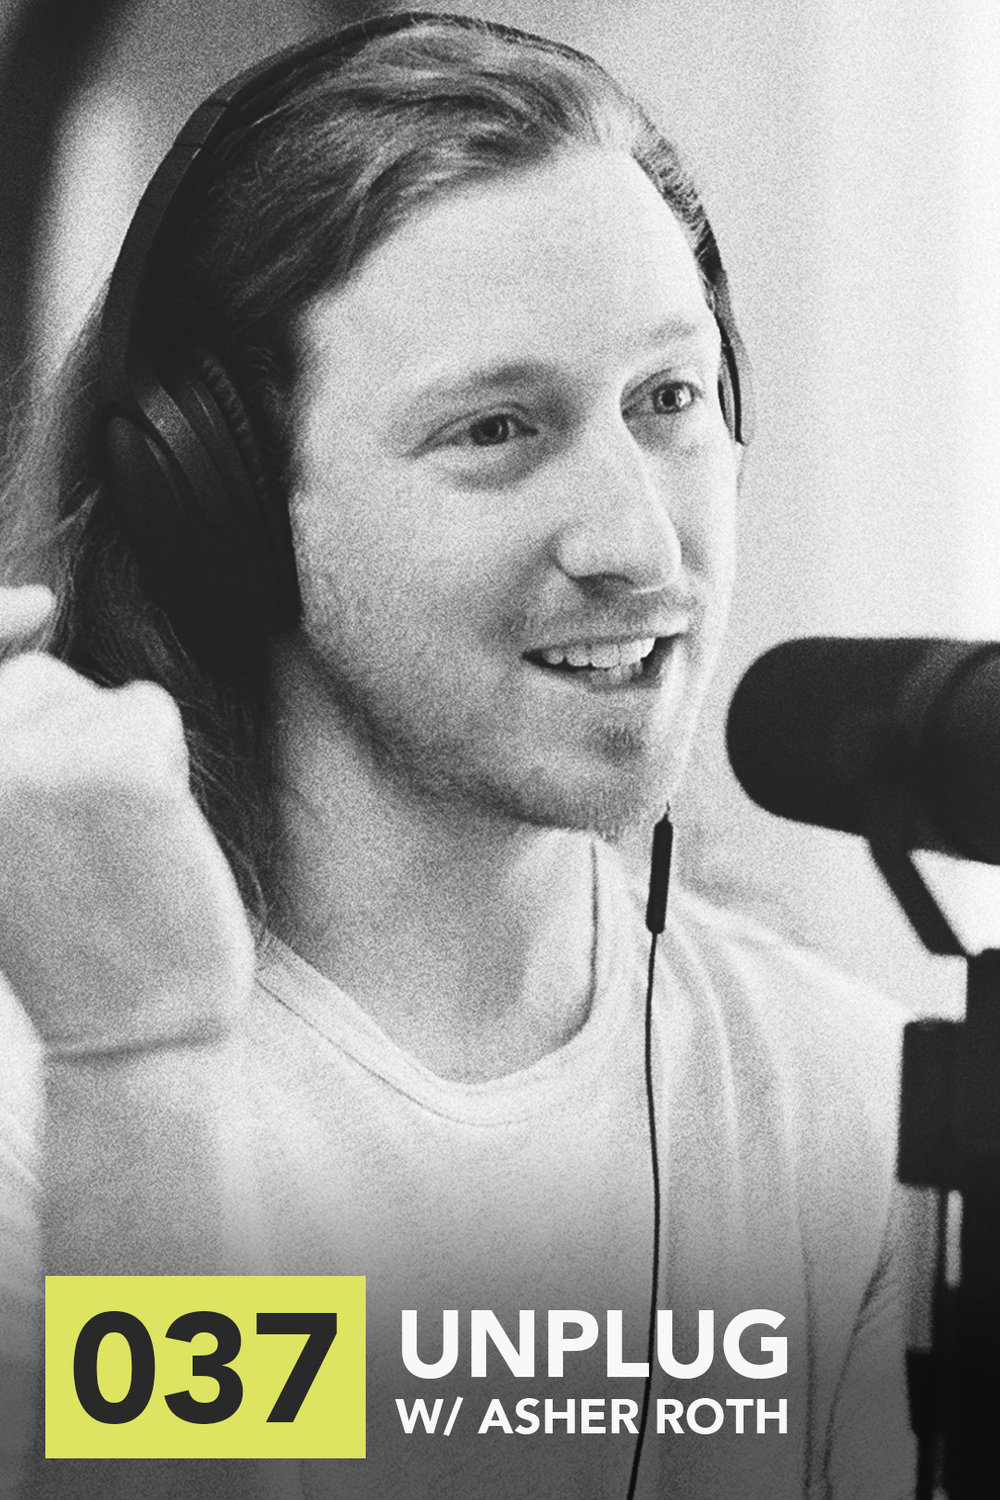 Unplug with Asher Roth